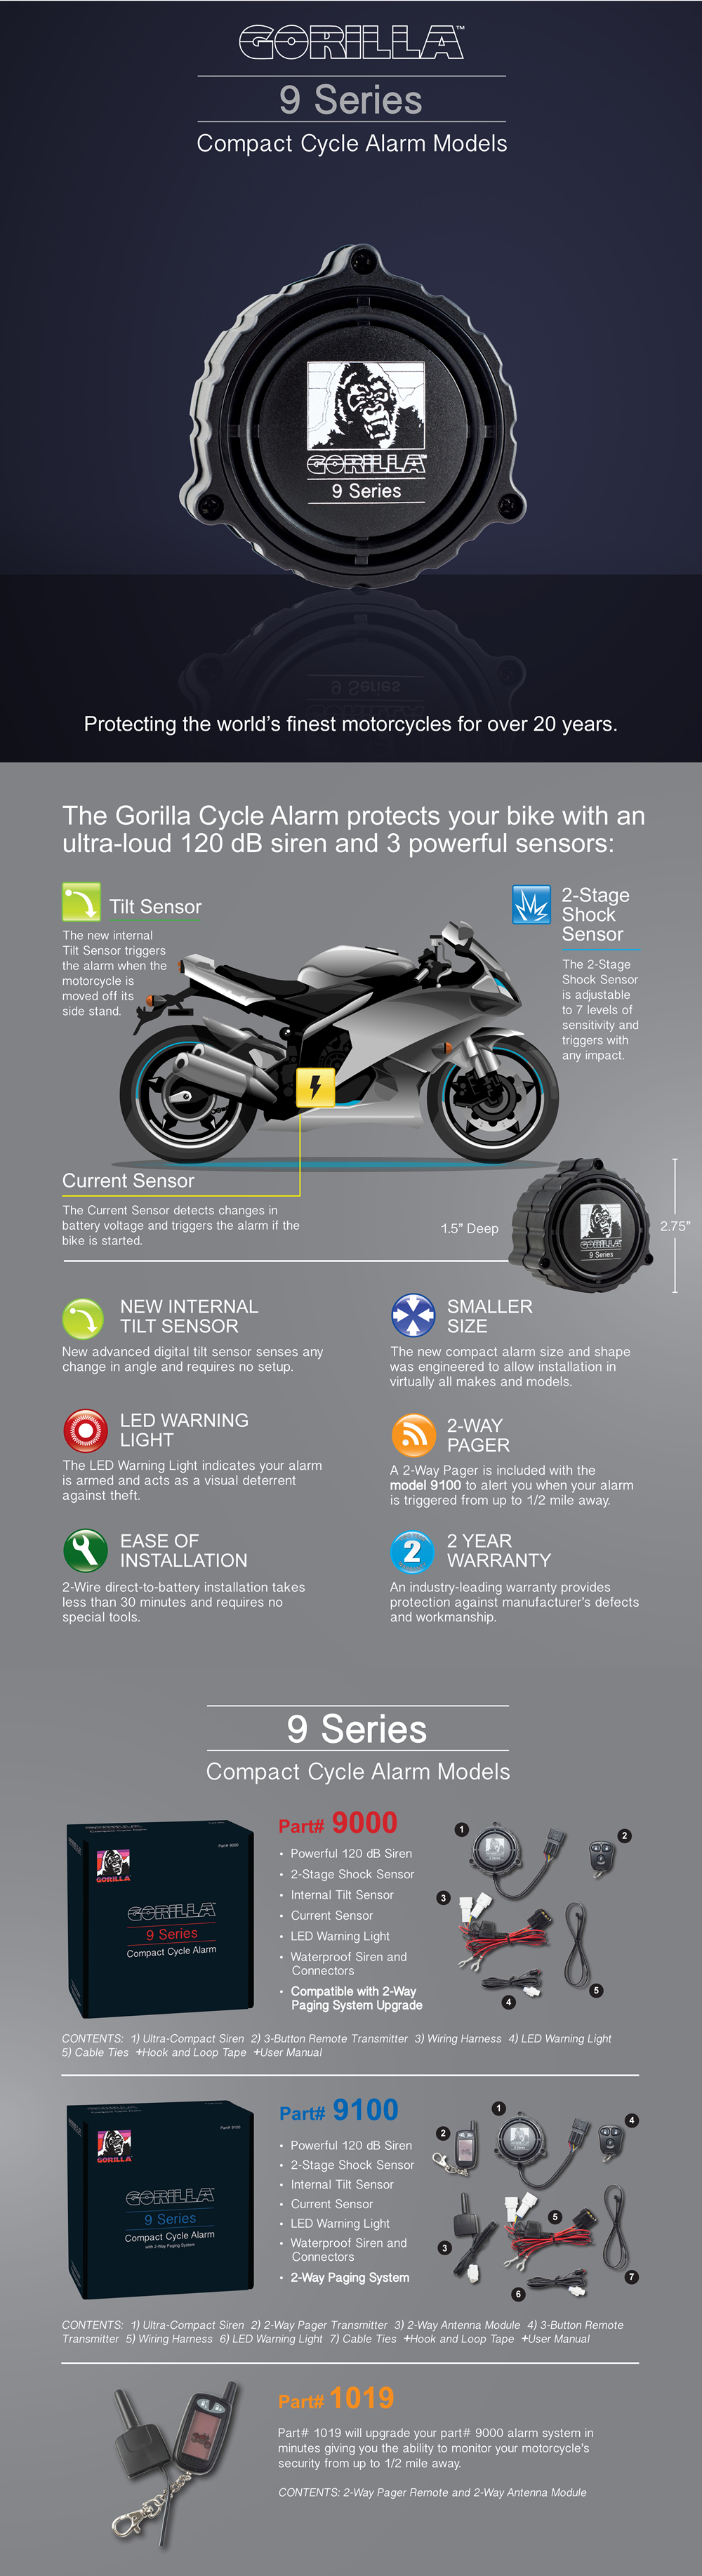 Electronic Accessories Honda Ctx700 Forum